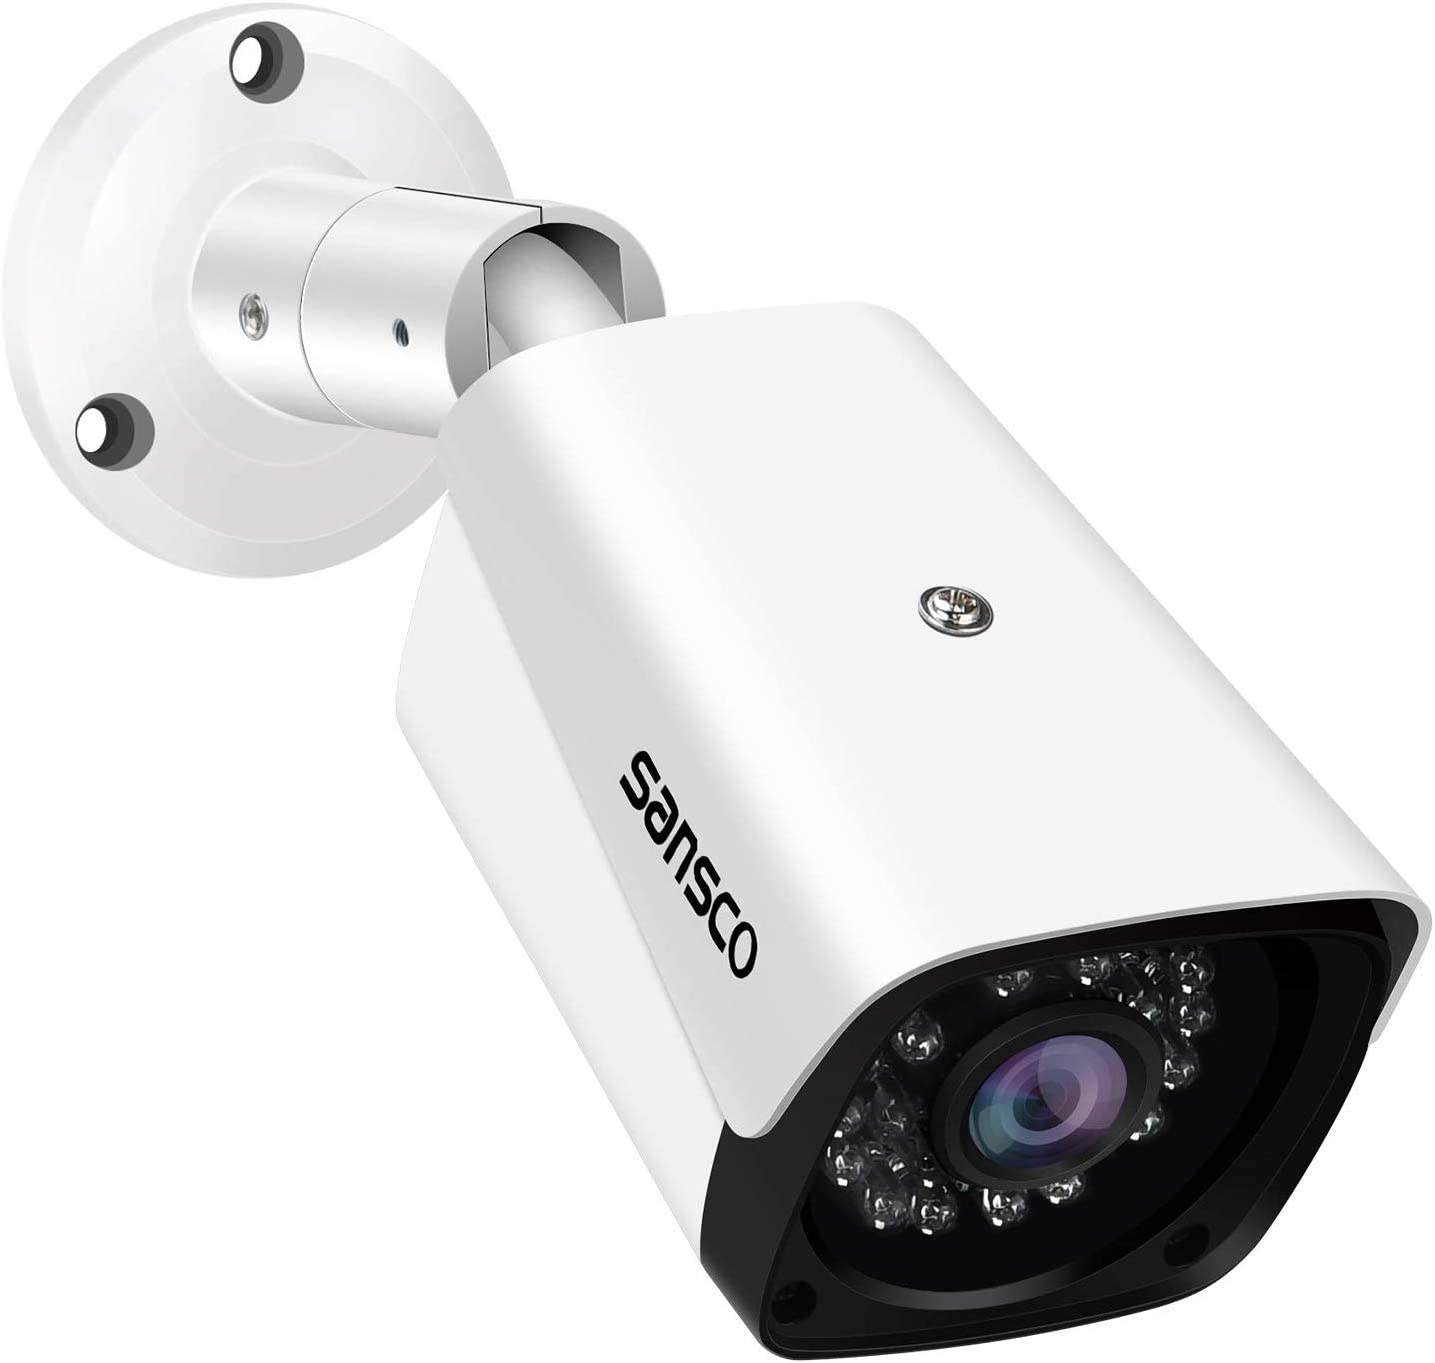 SANSCO 2MP HD 1080P Bullet Security Camera for CCTV Surveillance Camera System, IP66 Weatherproof for Outdoro Indoor Use, 24 LEDs, Night Vision, 3.6mm Lens Wide Angle, White